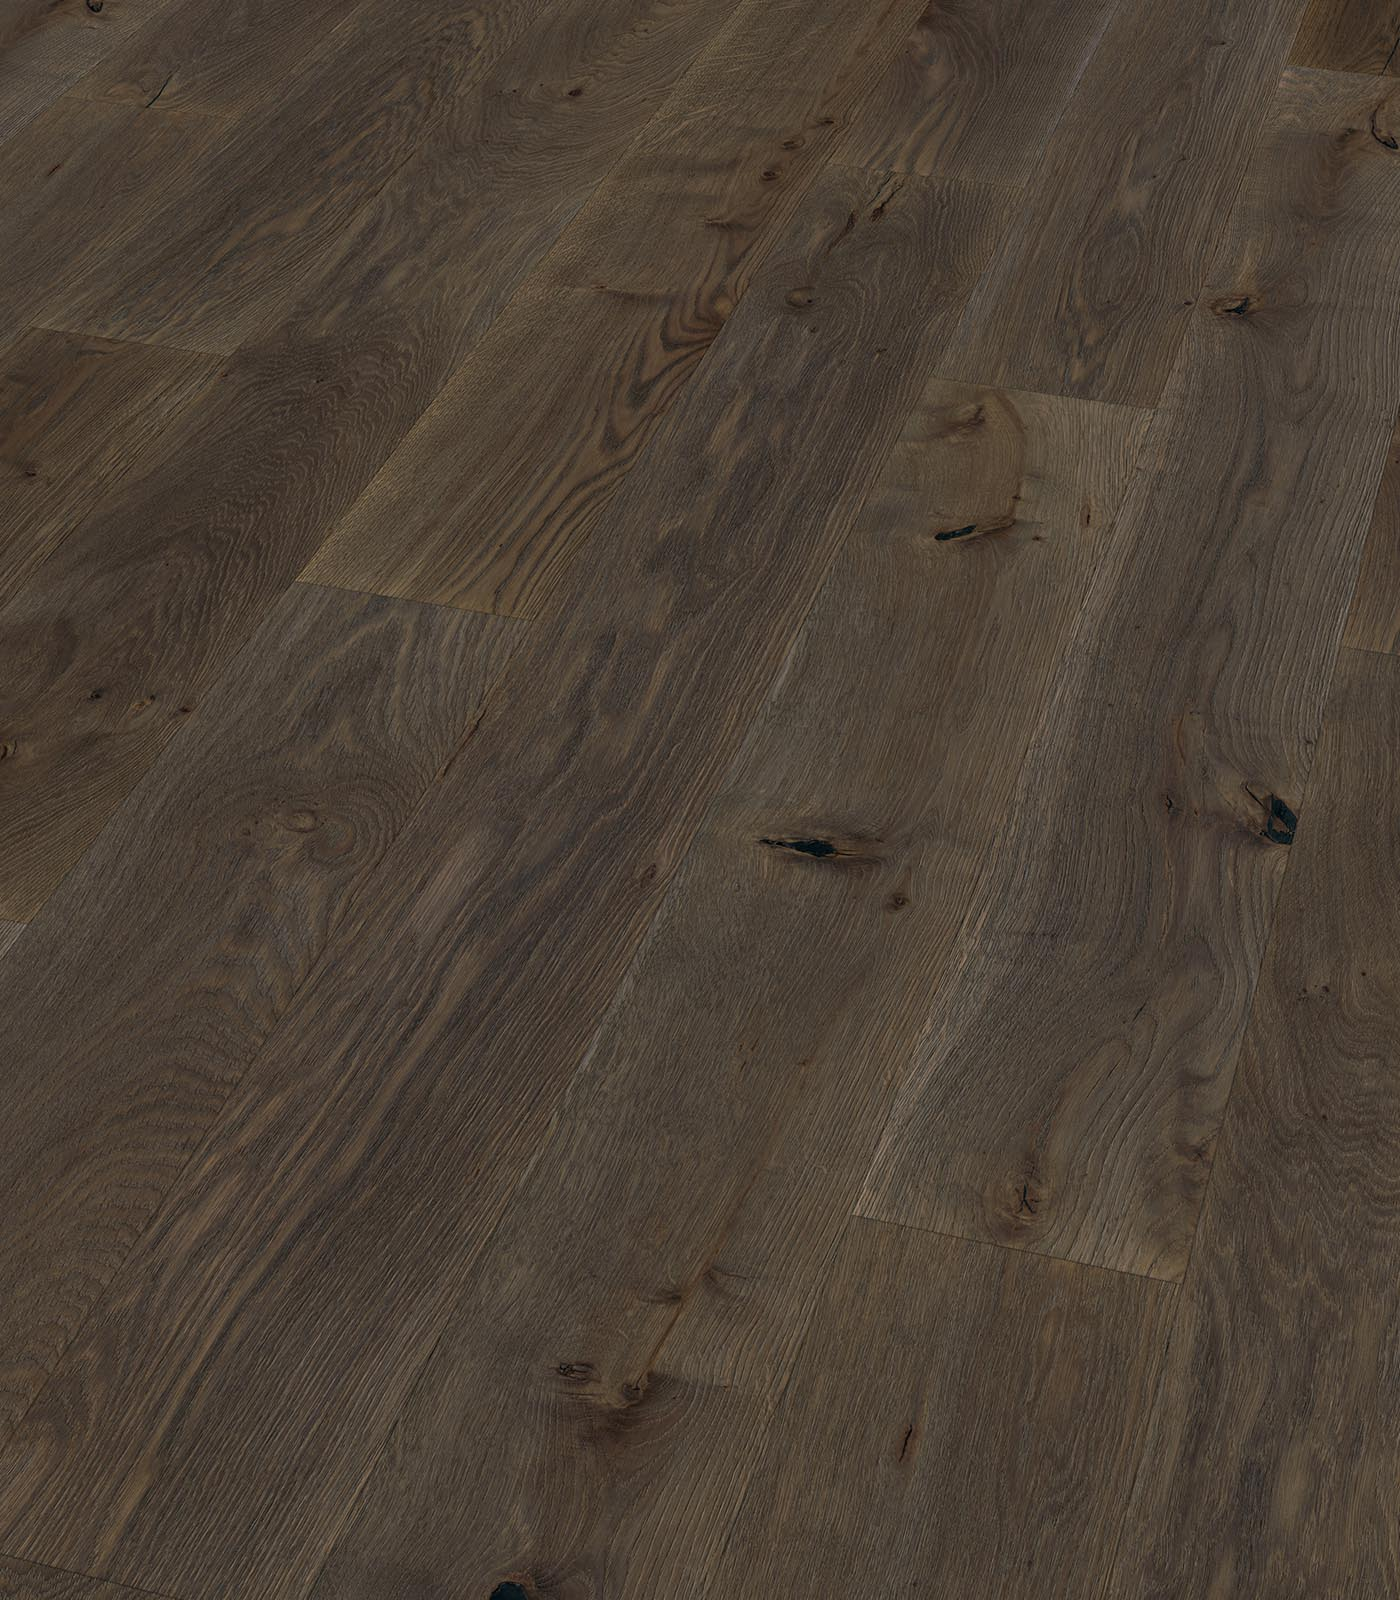 Stellenbosch-Lifestyle Collection-European Oak Floors angle